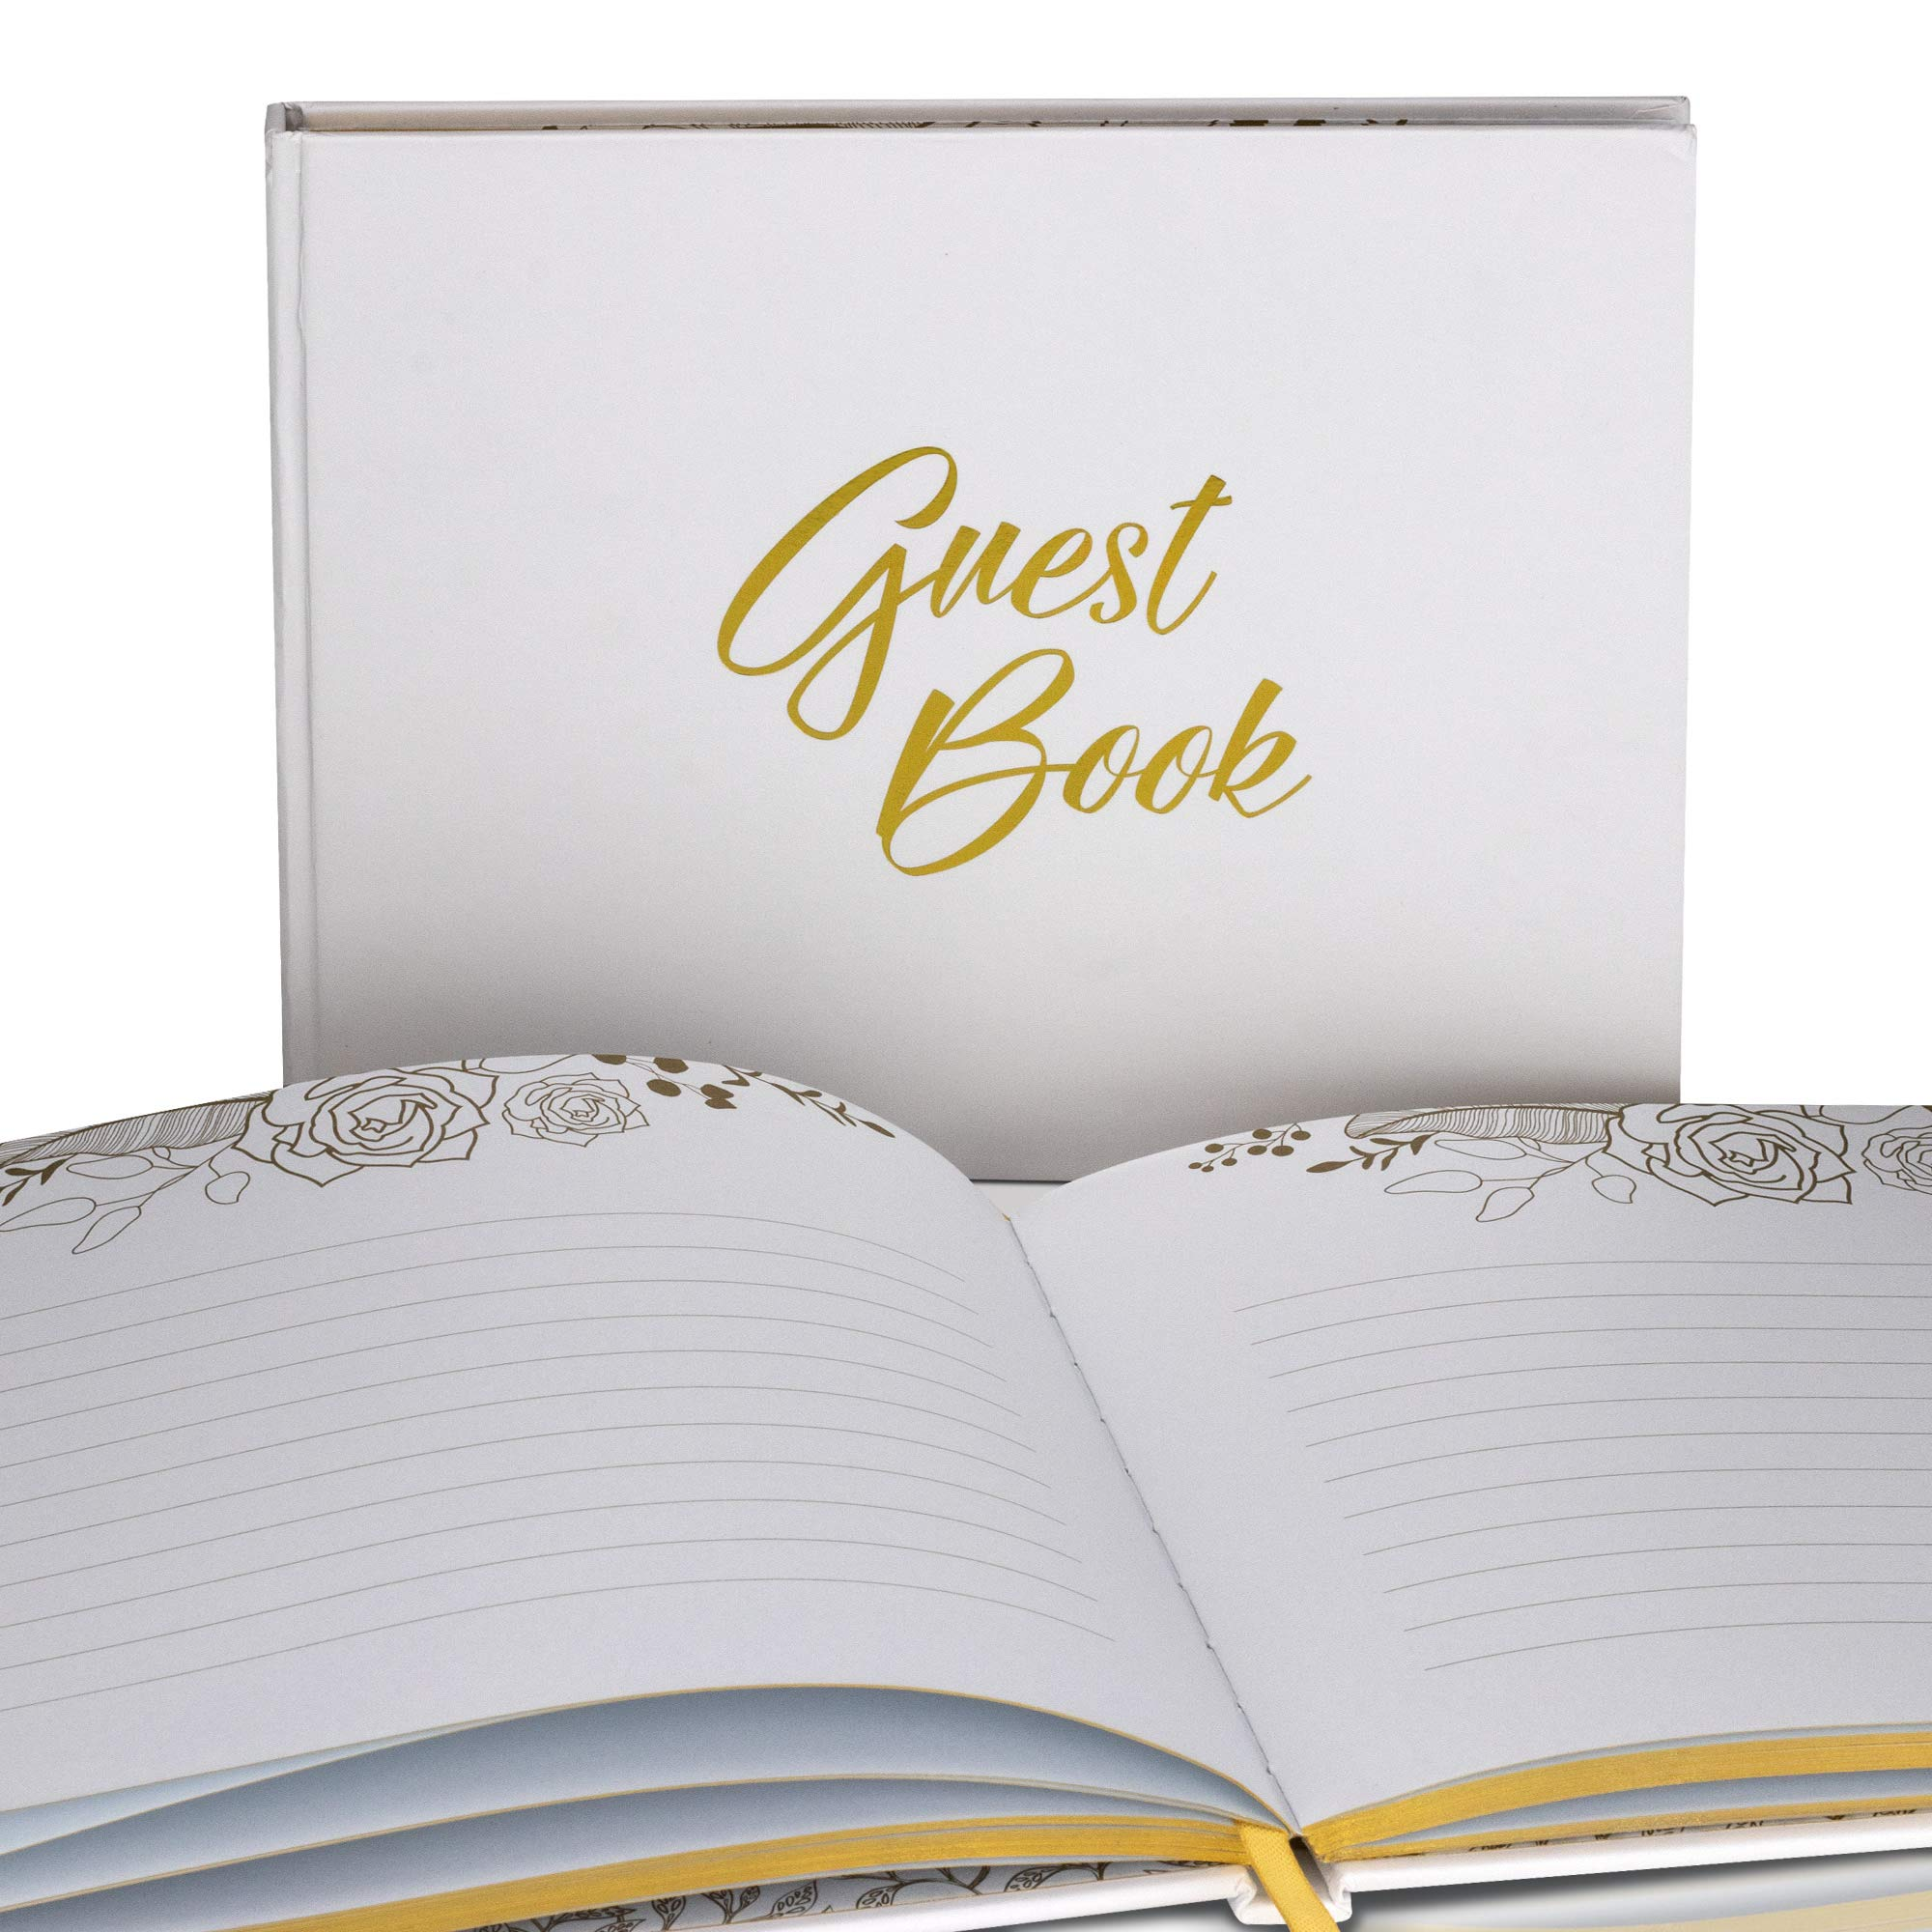 Unique Wedding Guest Book with Rustic Trim and Gold Stamped Foil Set by VisuartPRO